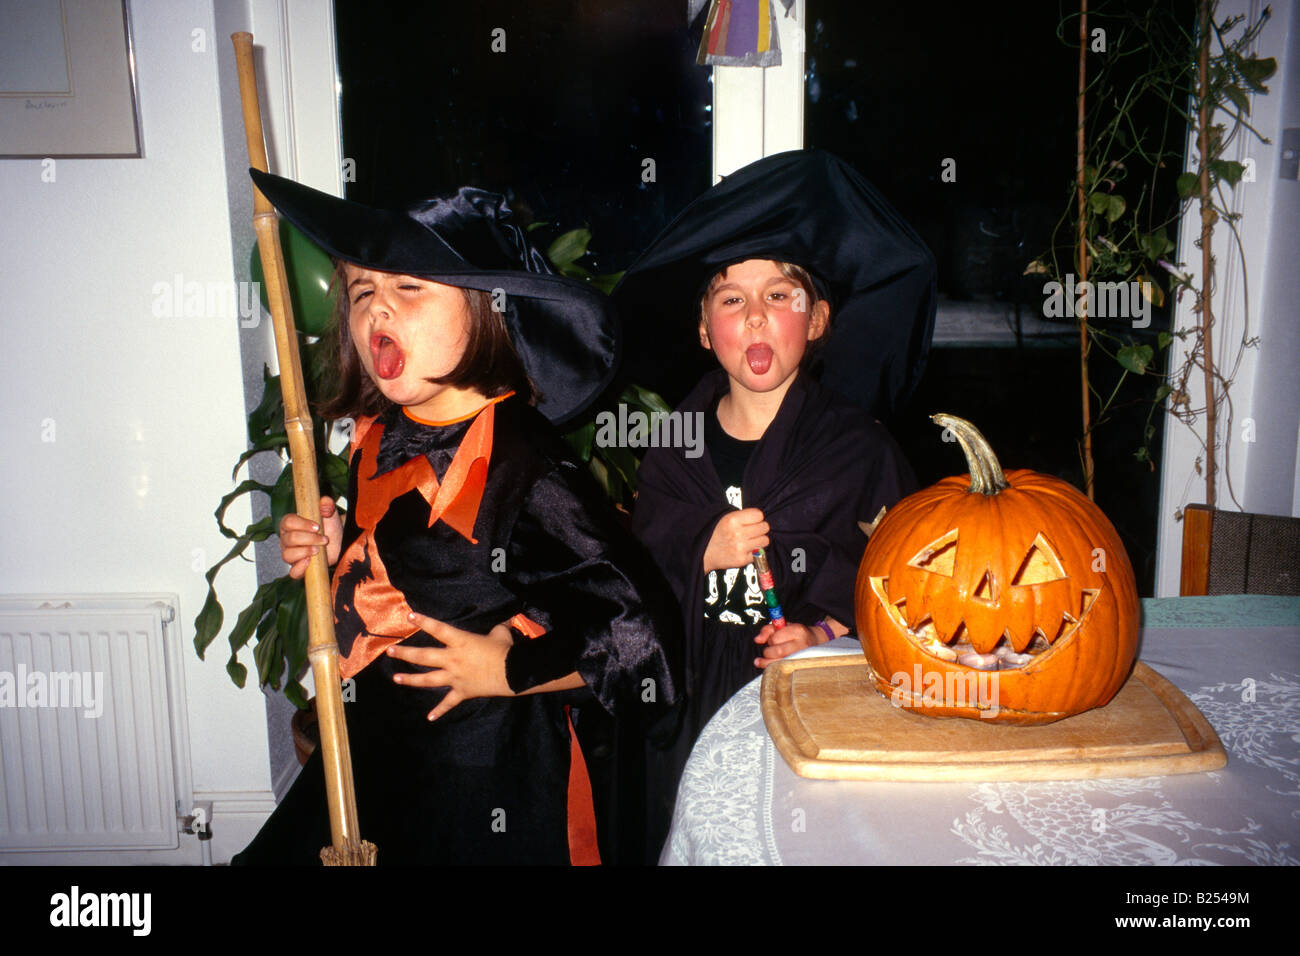 Halloween 8 Year Old Witches Pumpkin - Stock Image